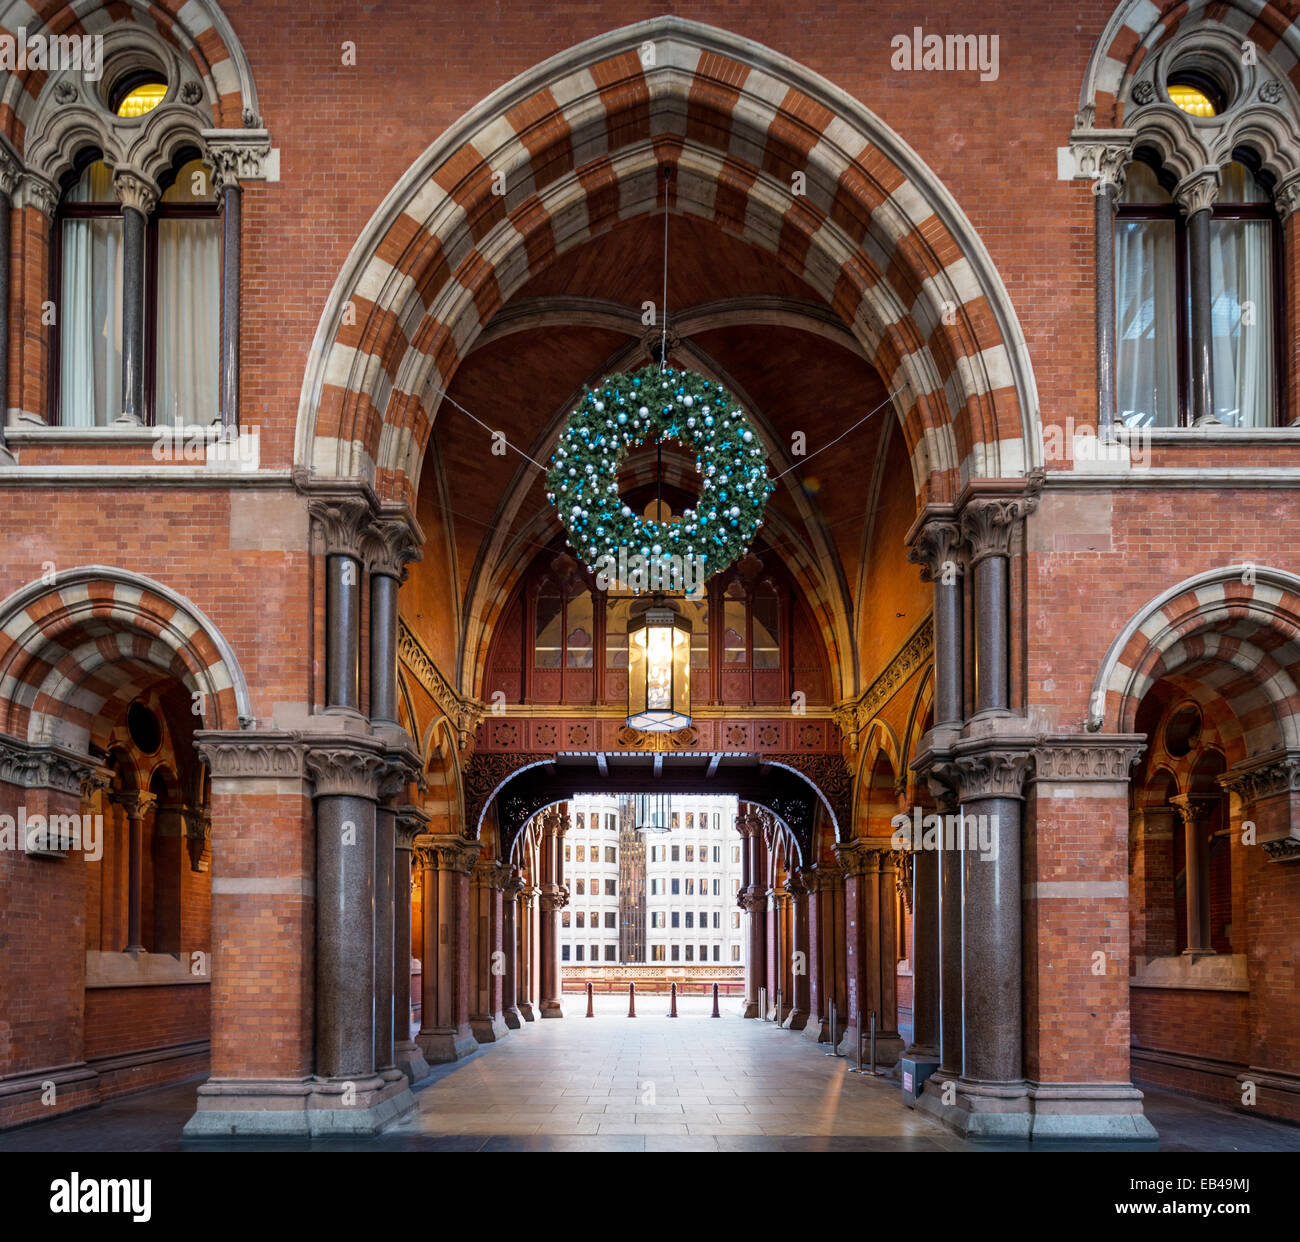 The main passenger entrance exit of London St Pancras railway station - Stock Image